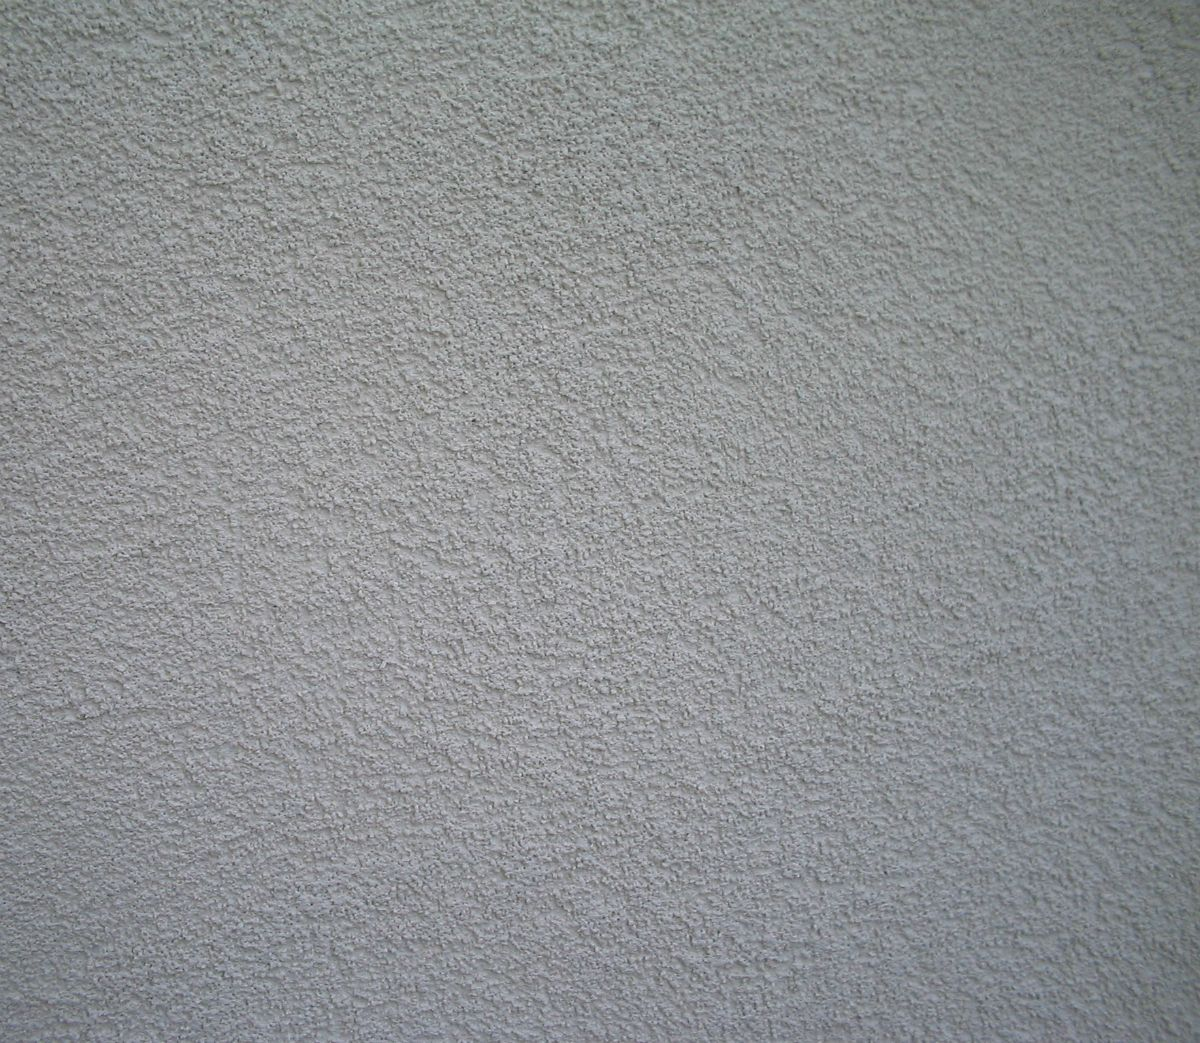 There Are More Textures And Finishes That Stucco Has To